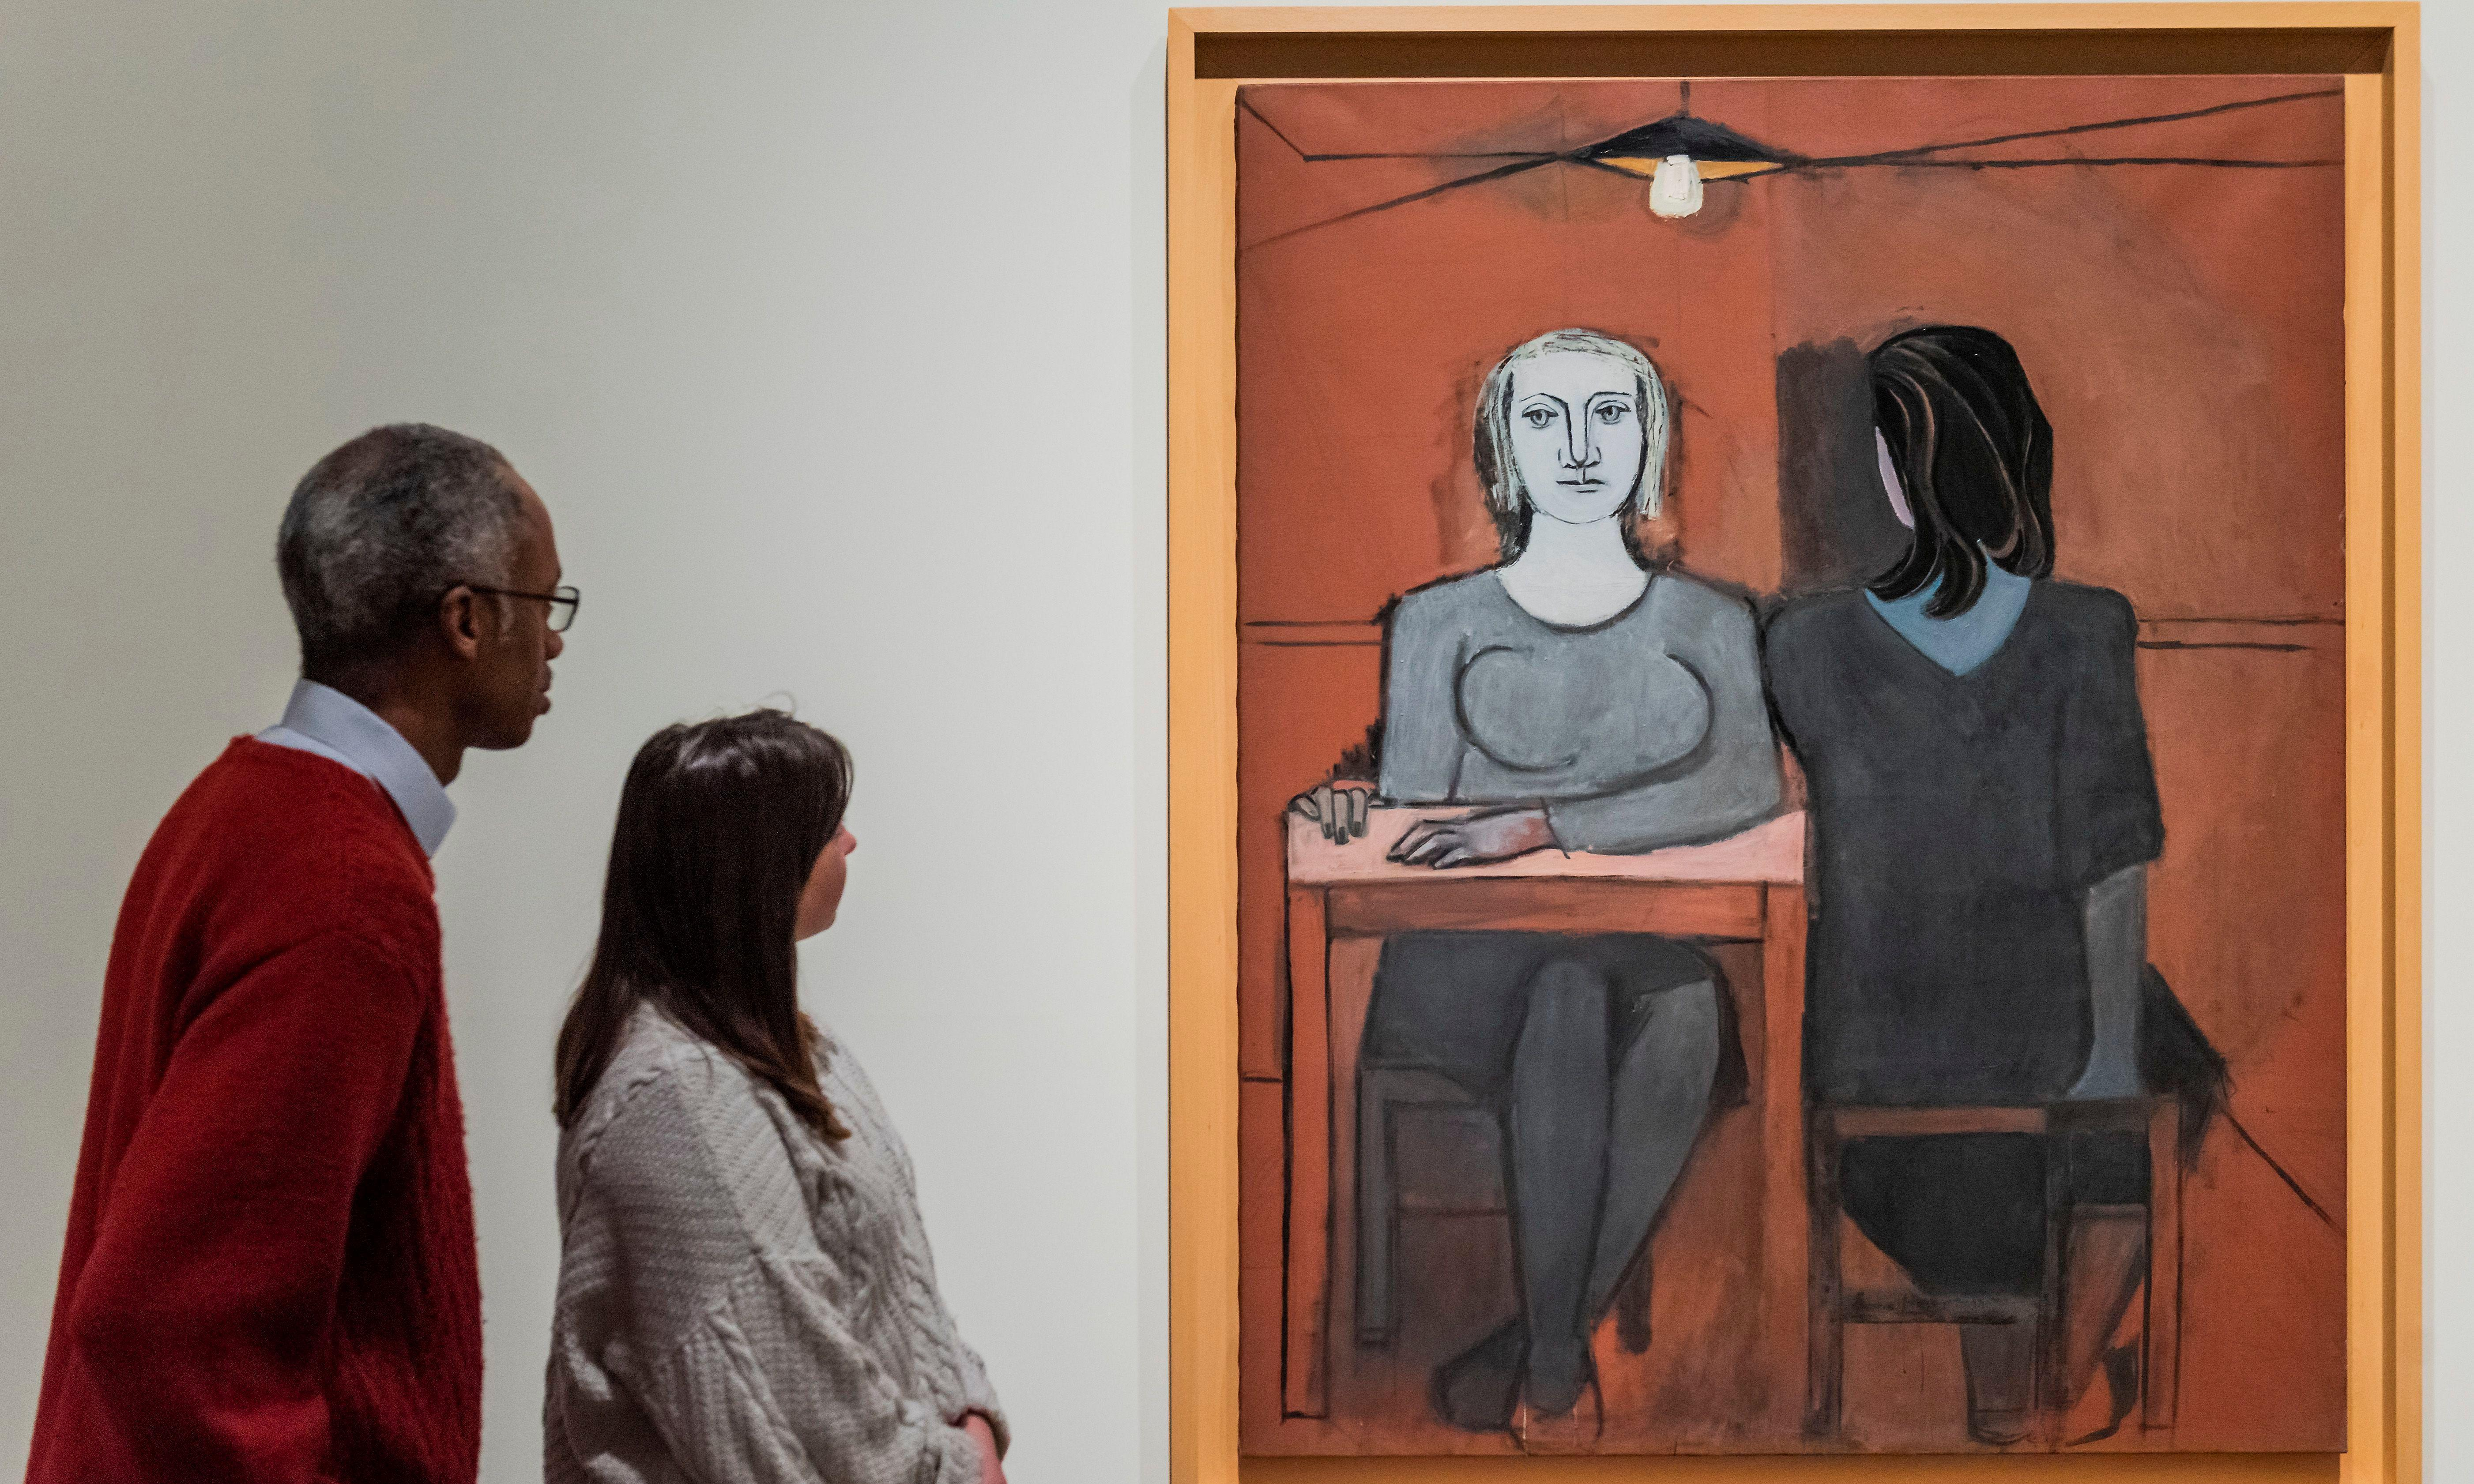 Painting of Picasso's two lovers together on show at Tate Modern